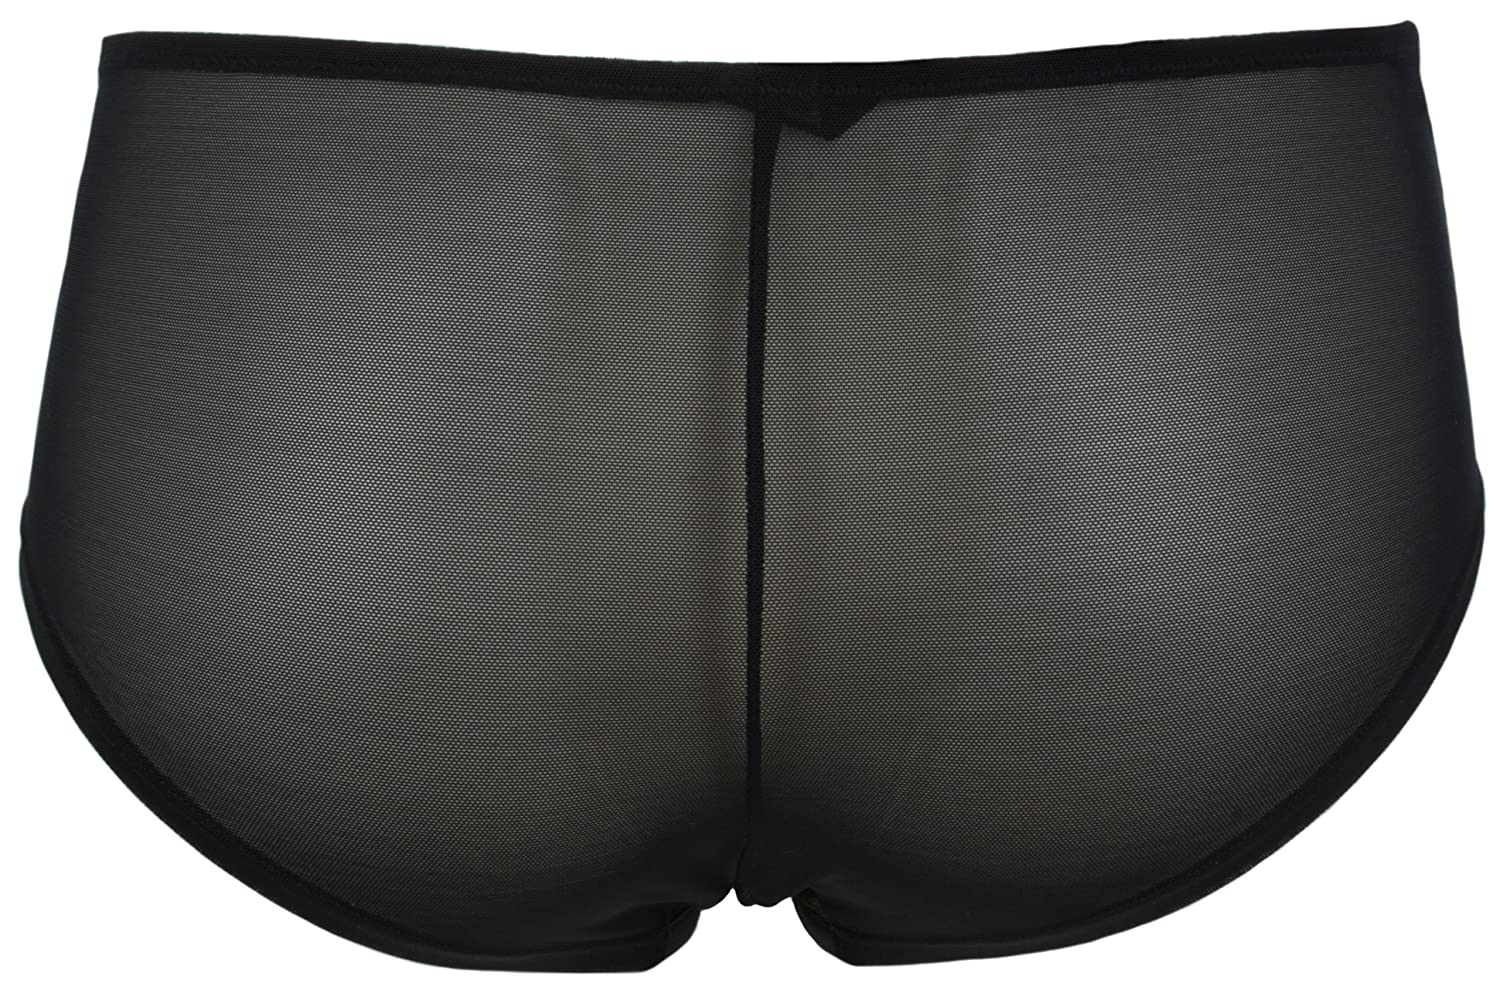 Ultimo Opium Overlay Mesh Shortie Briefs with Lace Trim